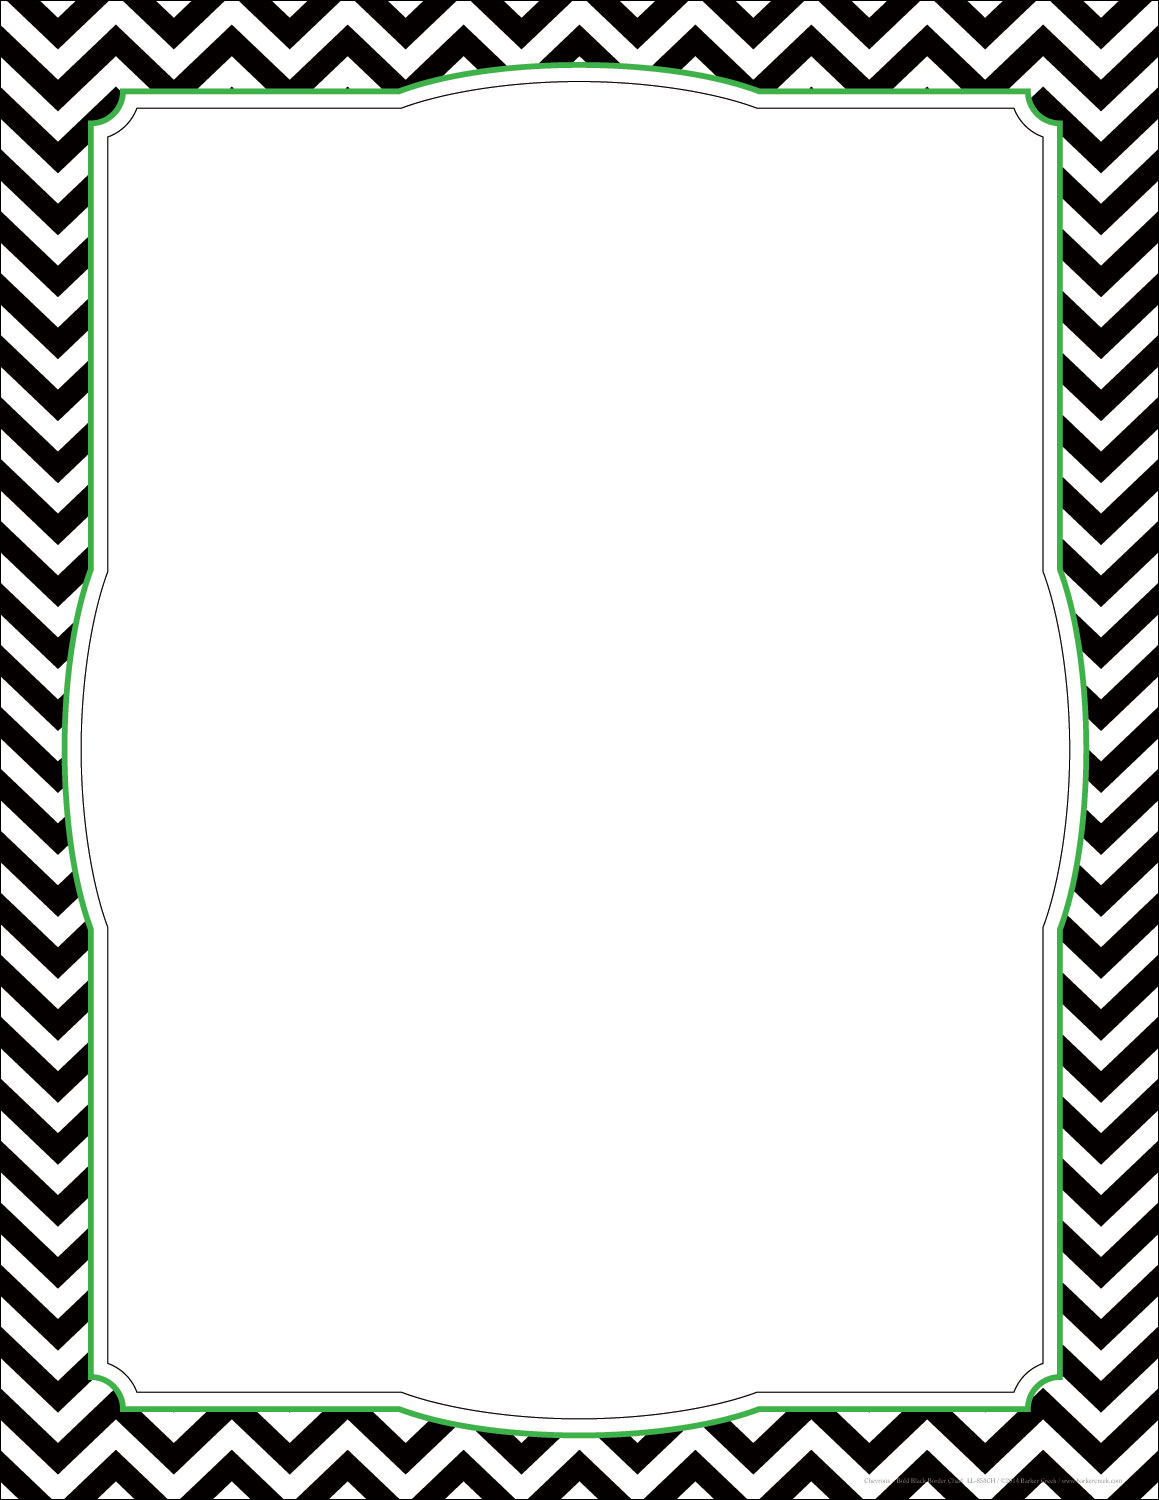 Borders for free download clip art black and white Borders for free download - ClipartFest clip art black and white